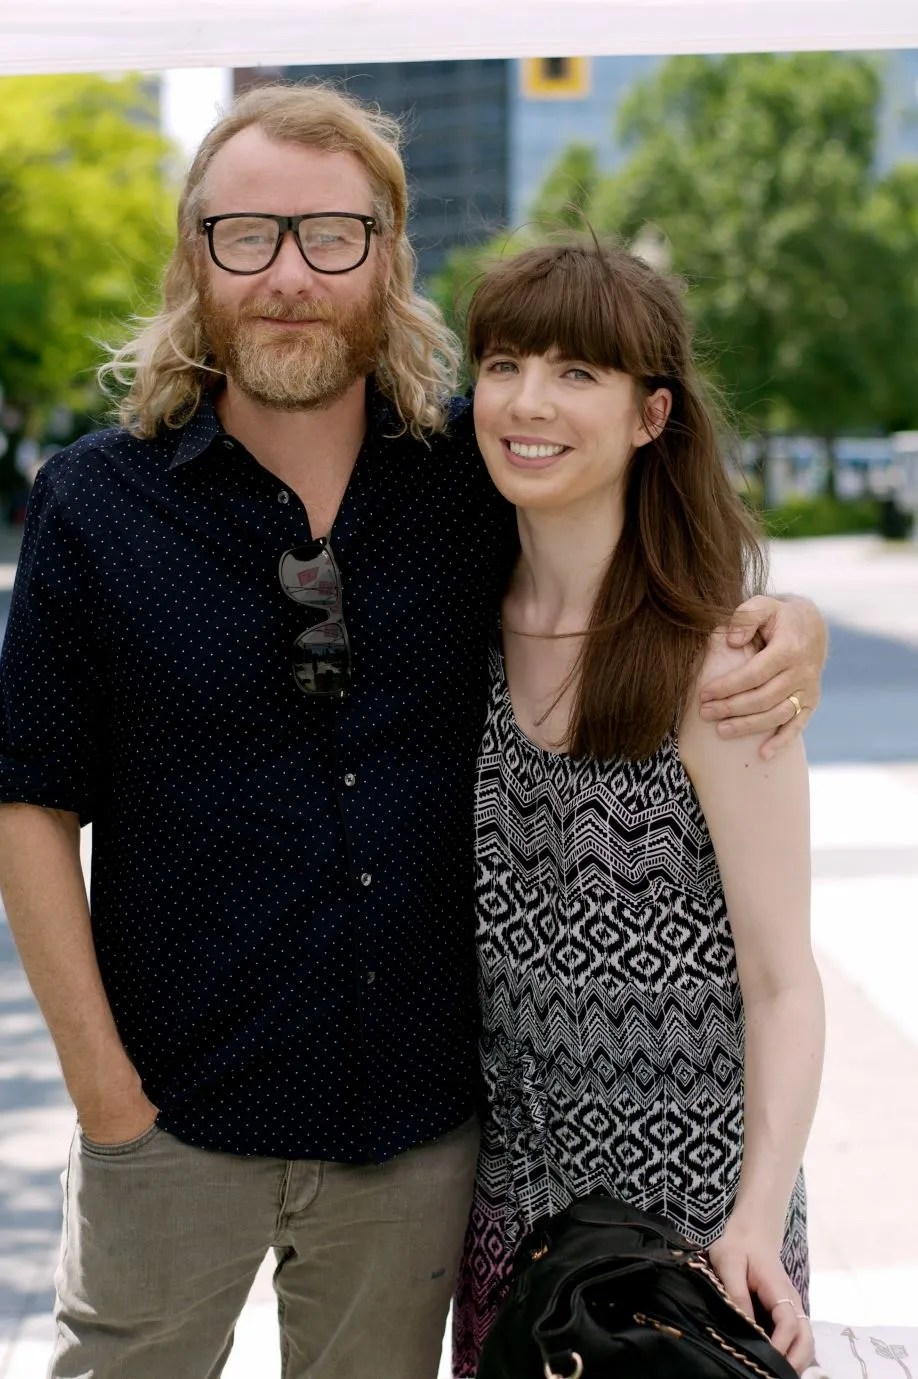 Matt Berninger and Kristin Archer. Photo by Lisa Vuyk